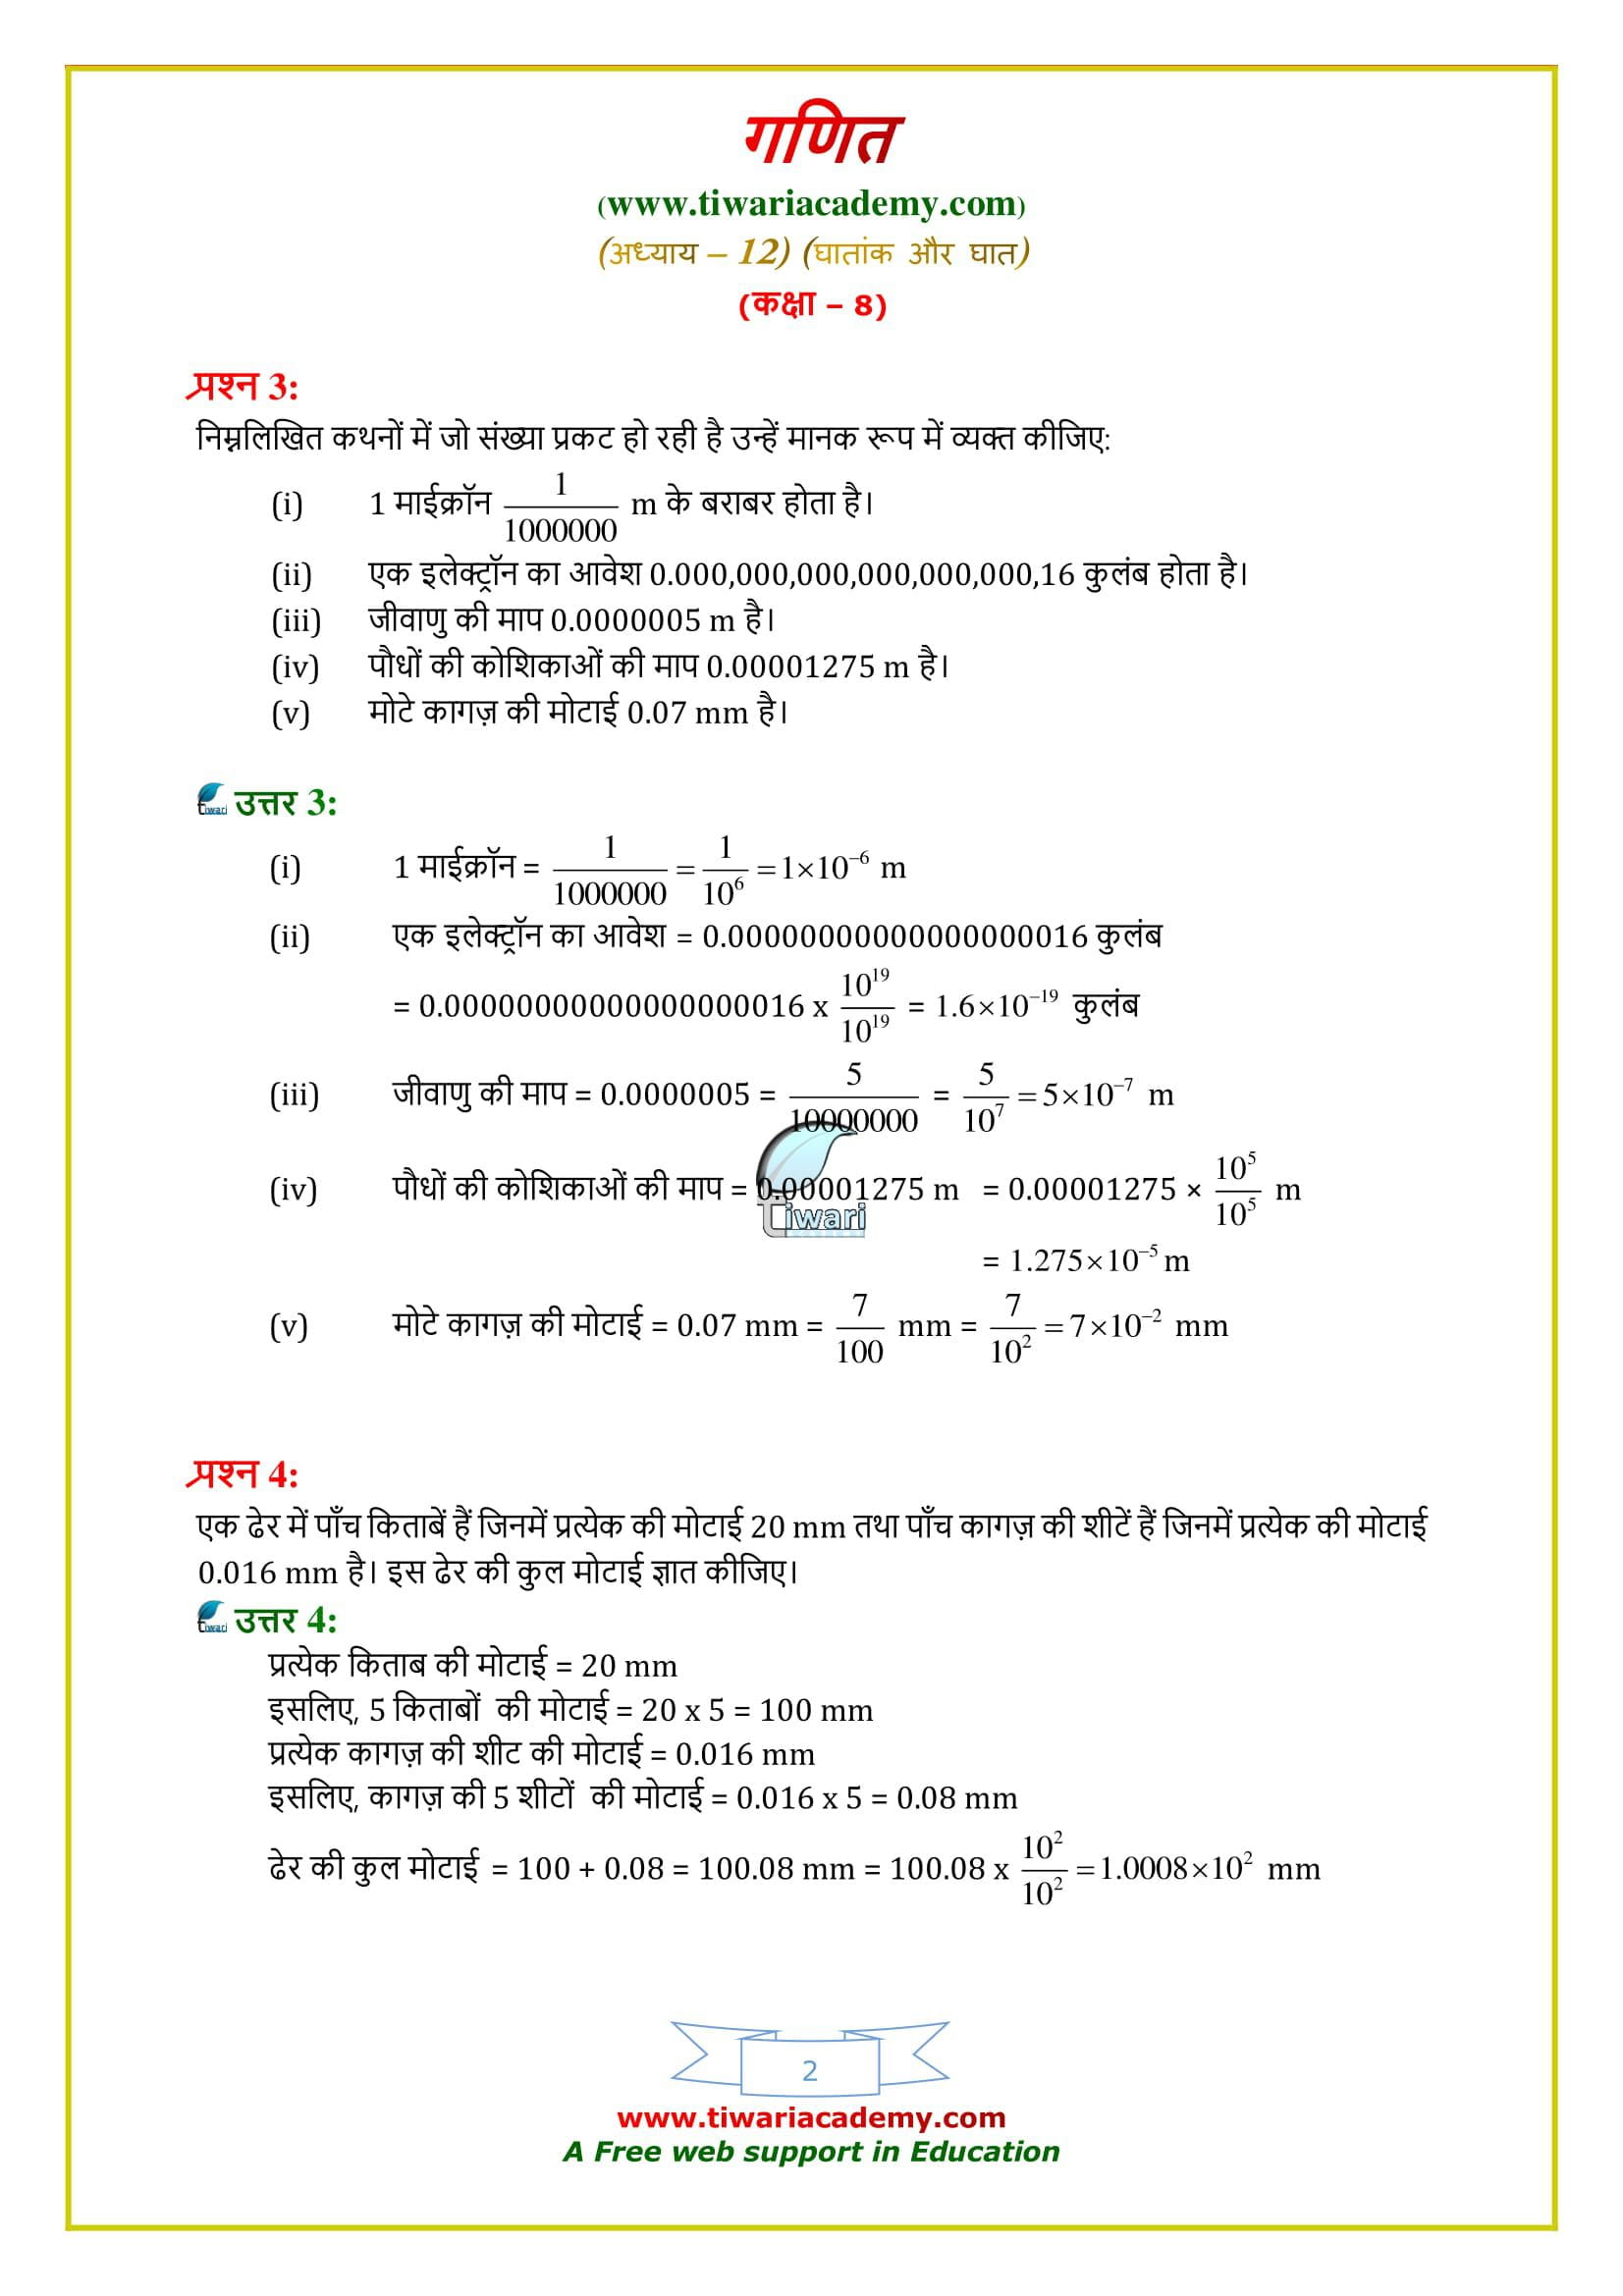 8 Maths Exercise 12.2 solutions in hindi medium updated for 2018-19